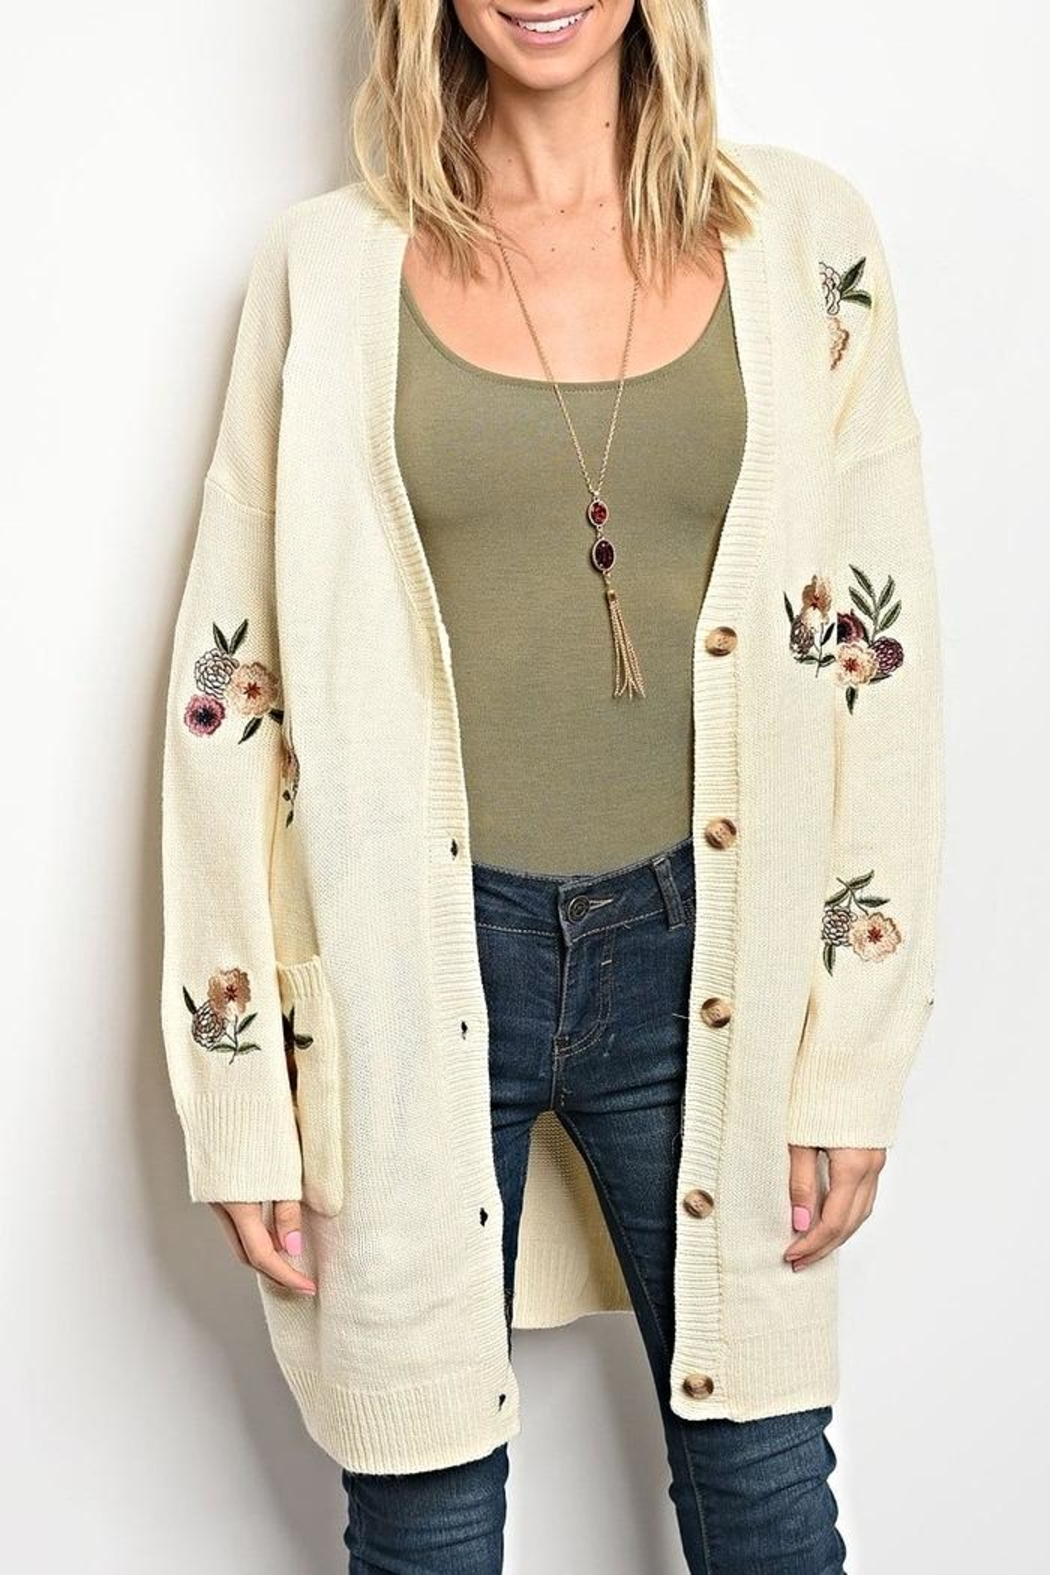 LoveRiche Floral Sweater Cardigan - Main Image